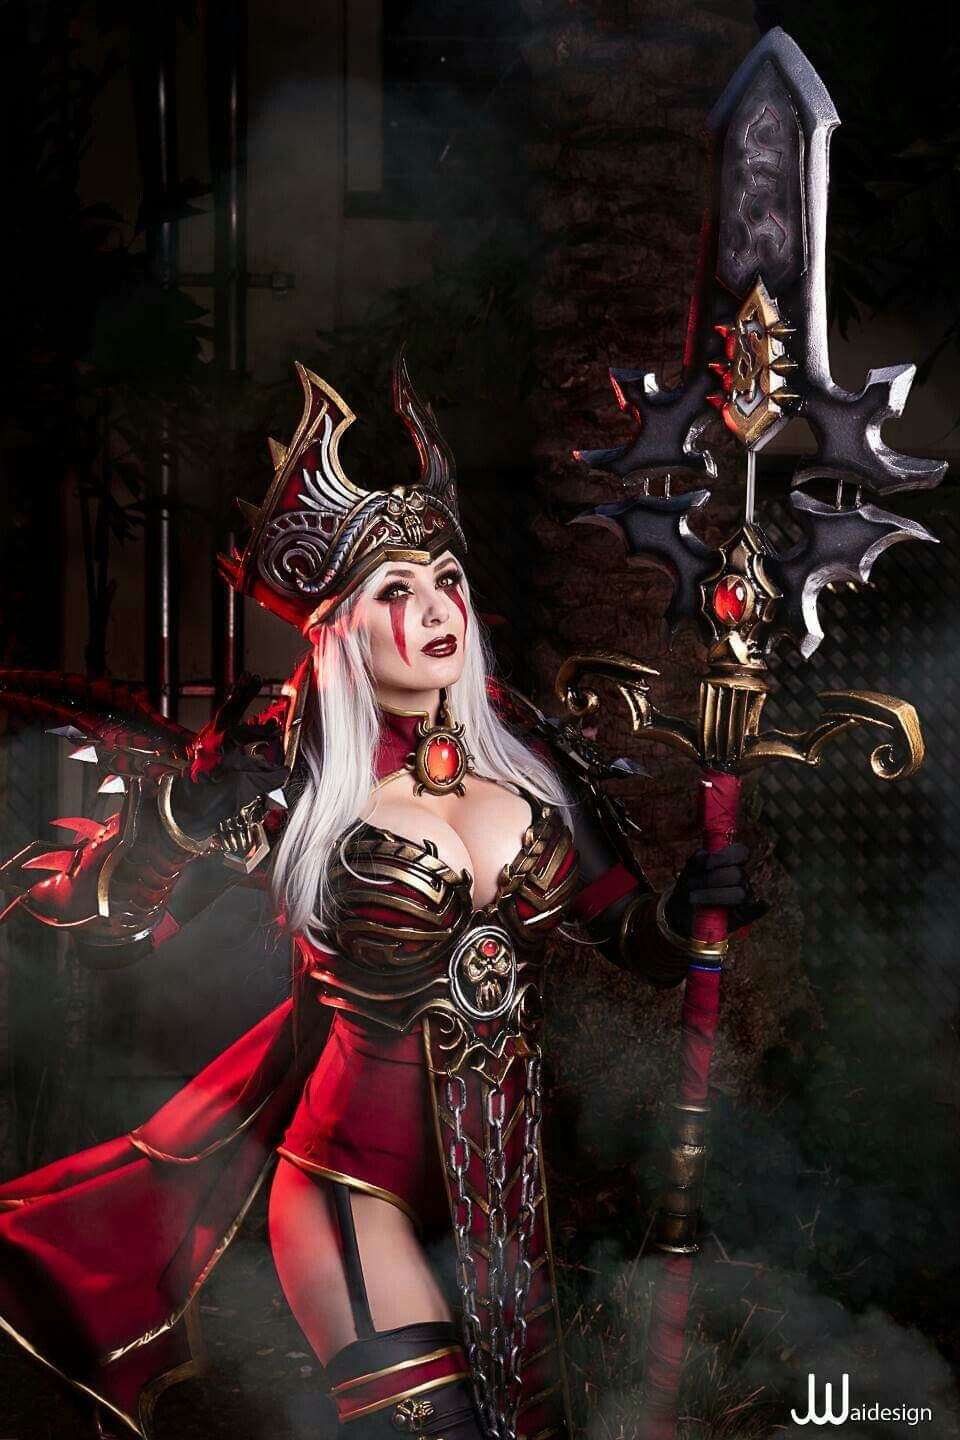 sally whitemane hot cosplay